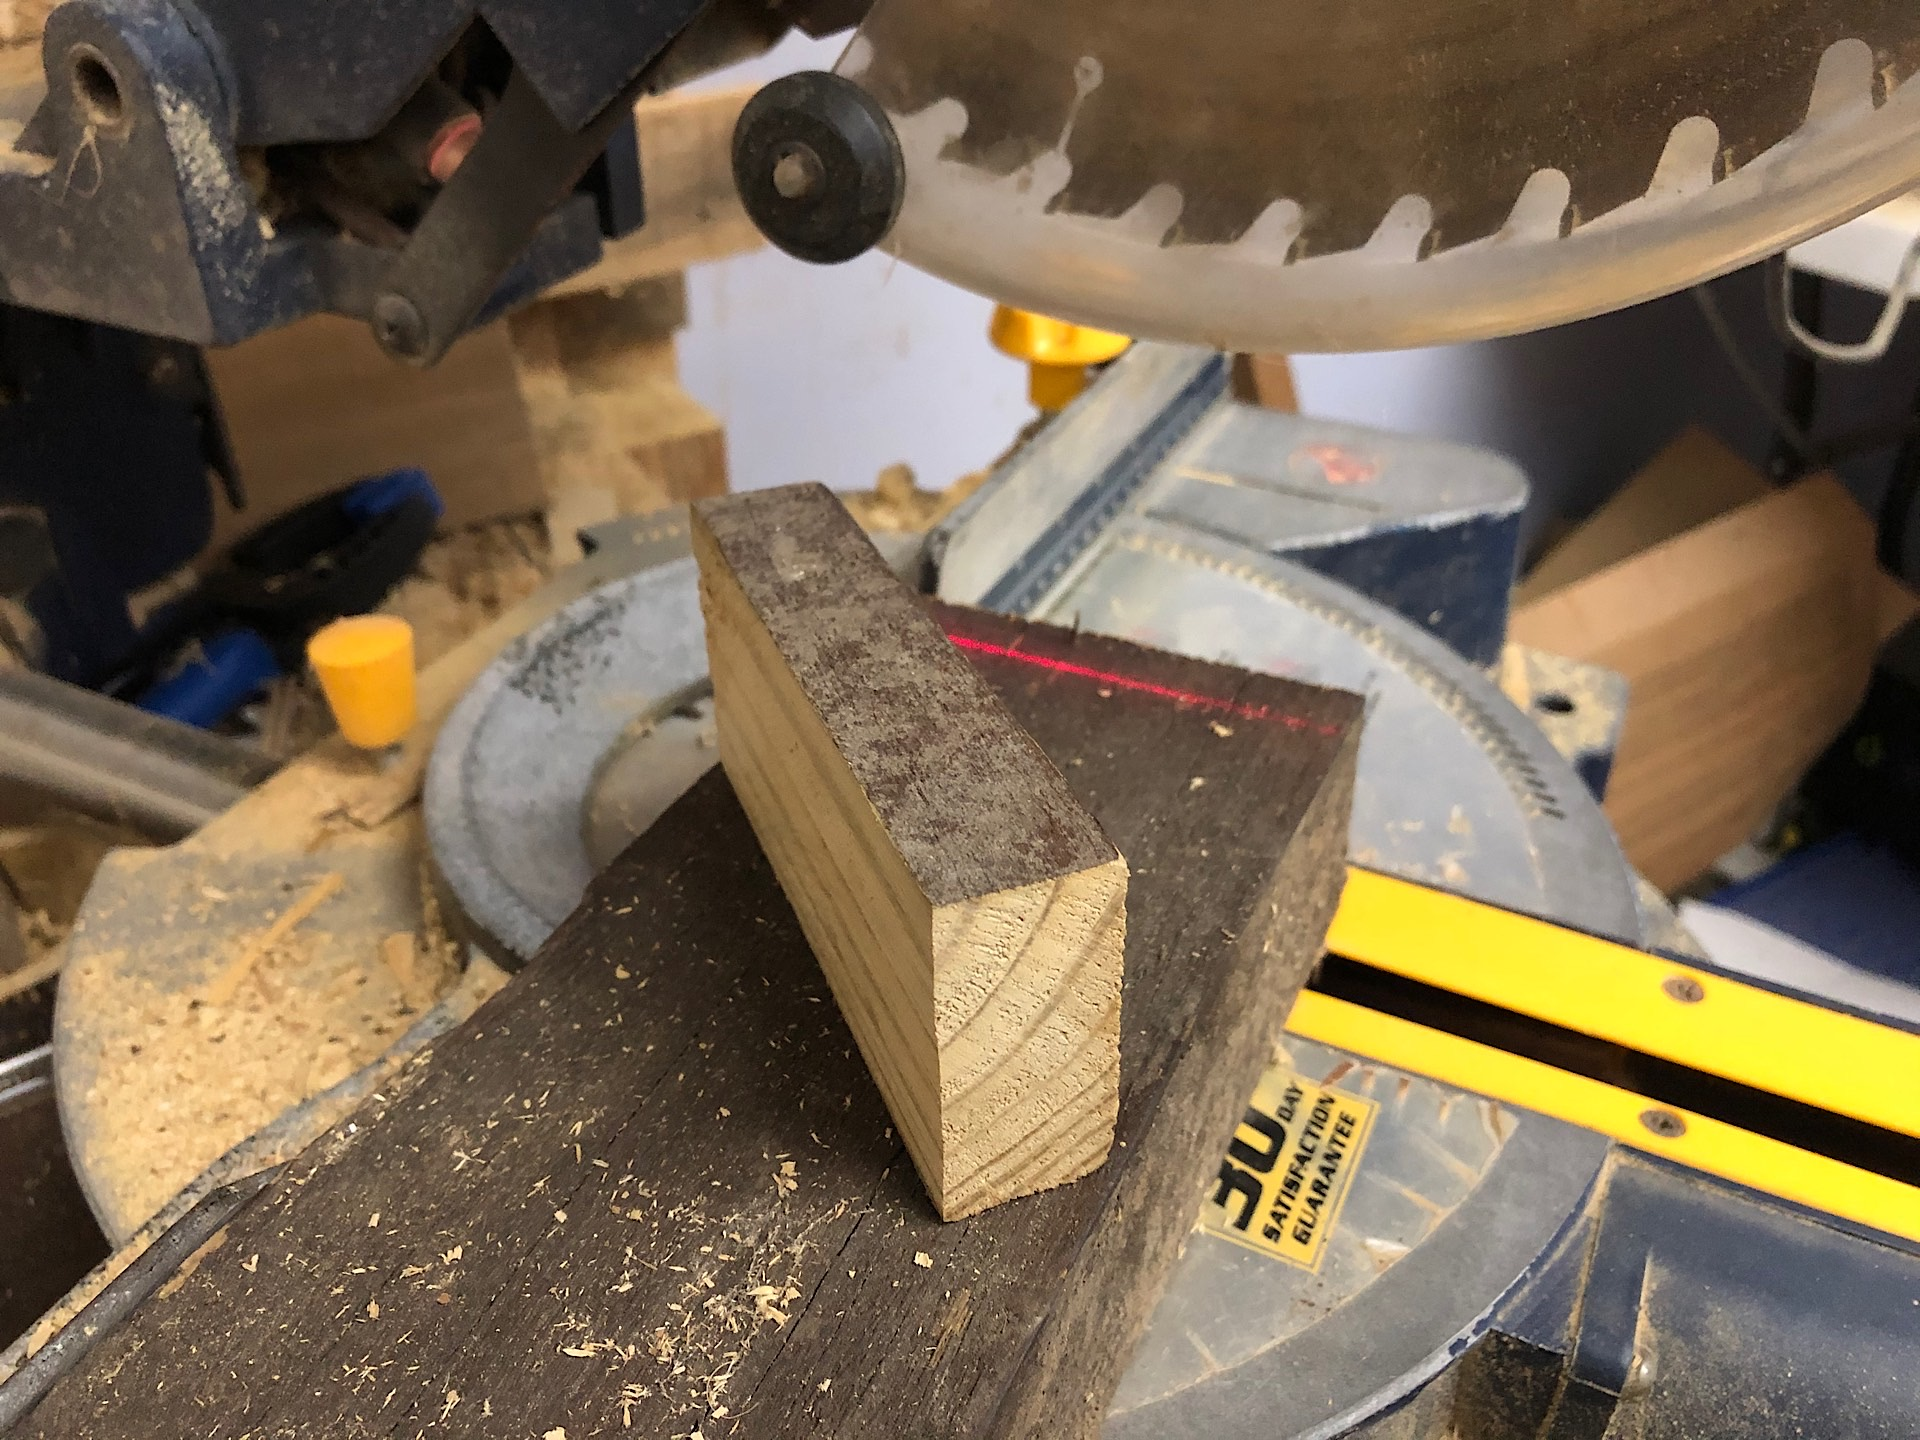 Cutting hardwood with compound saw